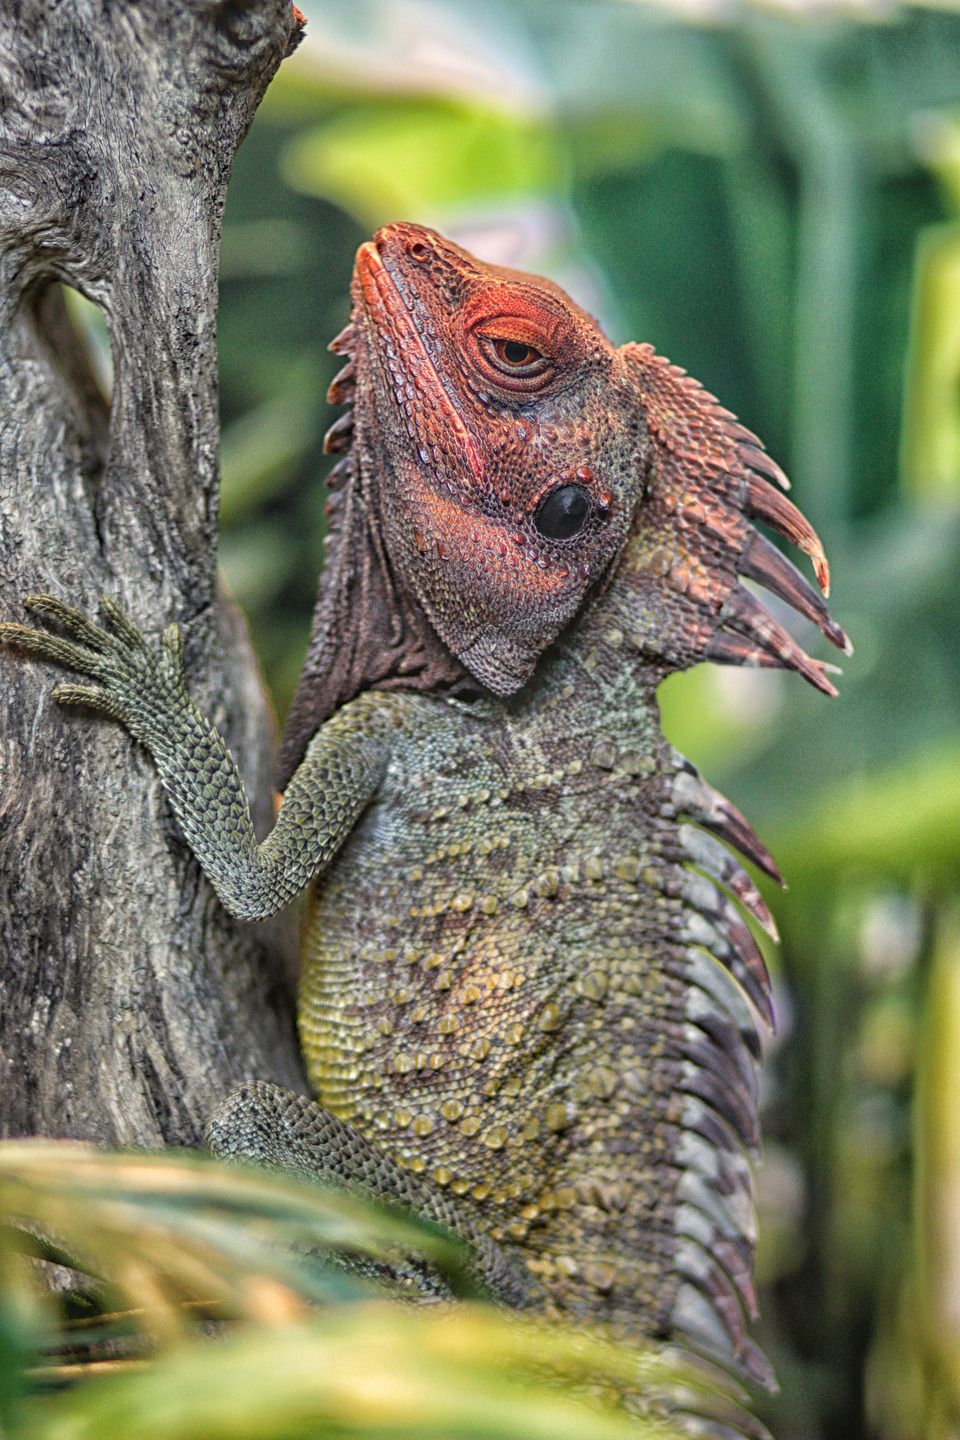 crested costa rican lizard see over 2500 more animal pictures on my facebook animals are. Black Bedroom Furniture Sets. Home Design Ideas